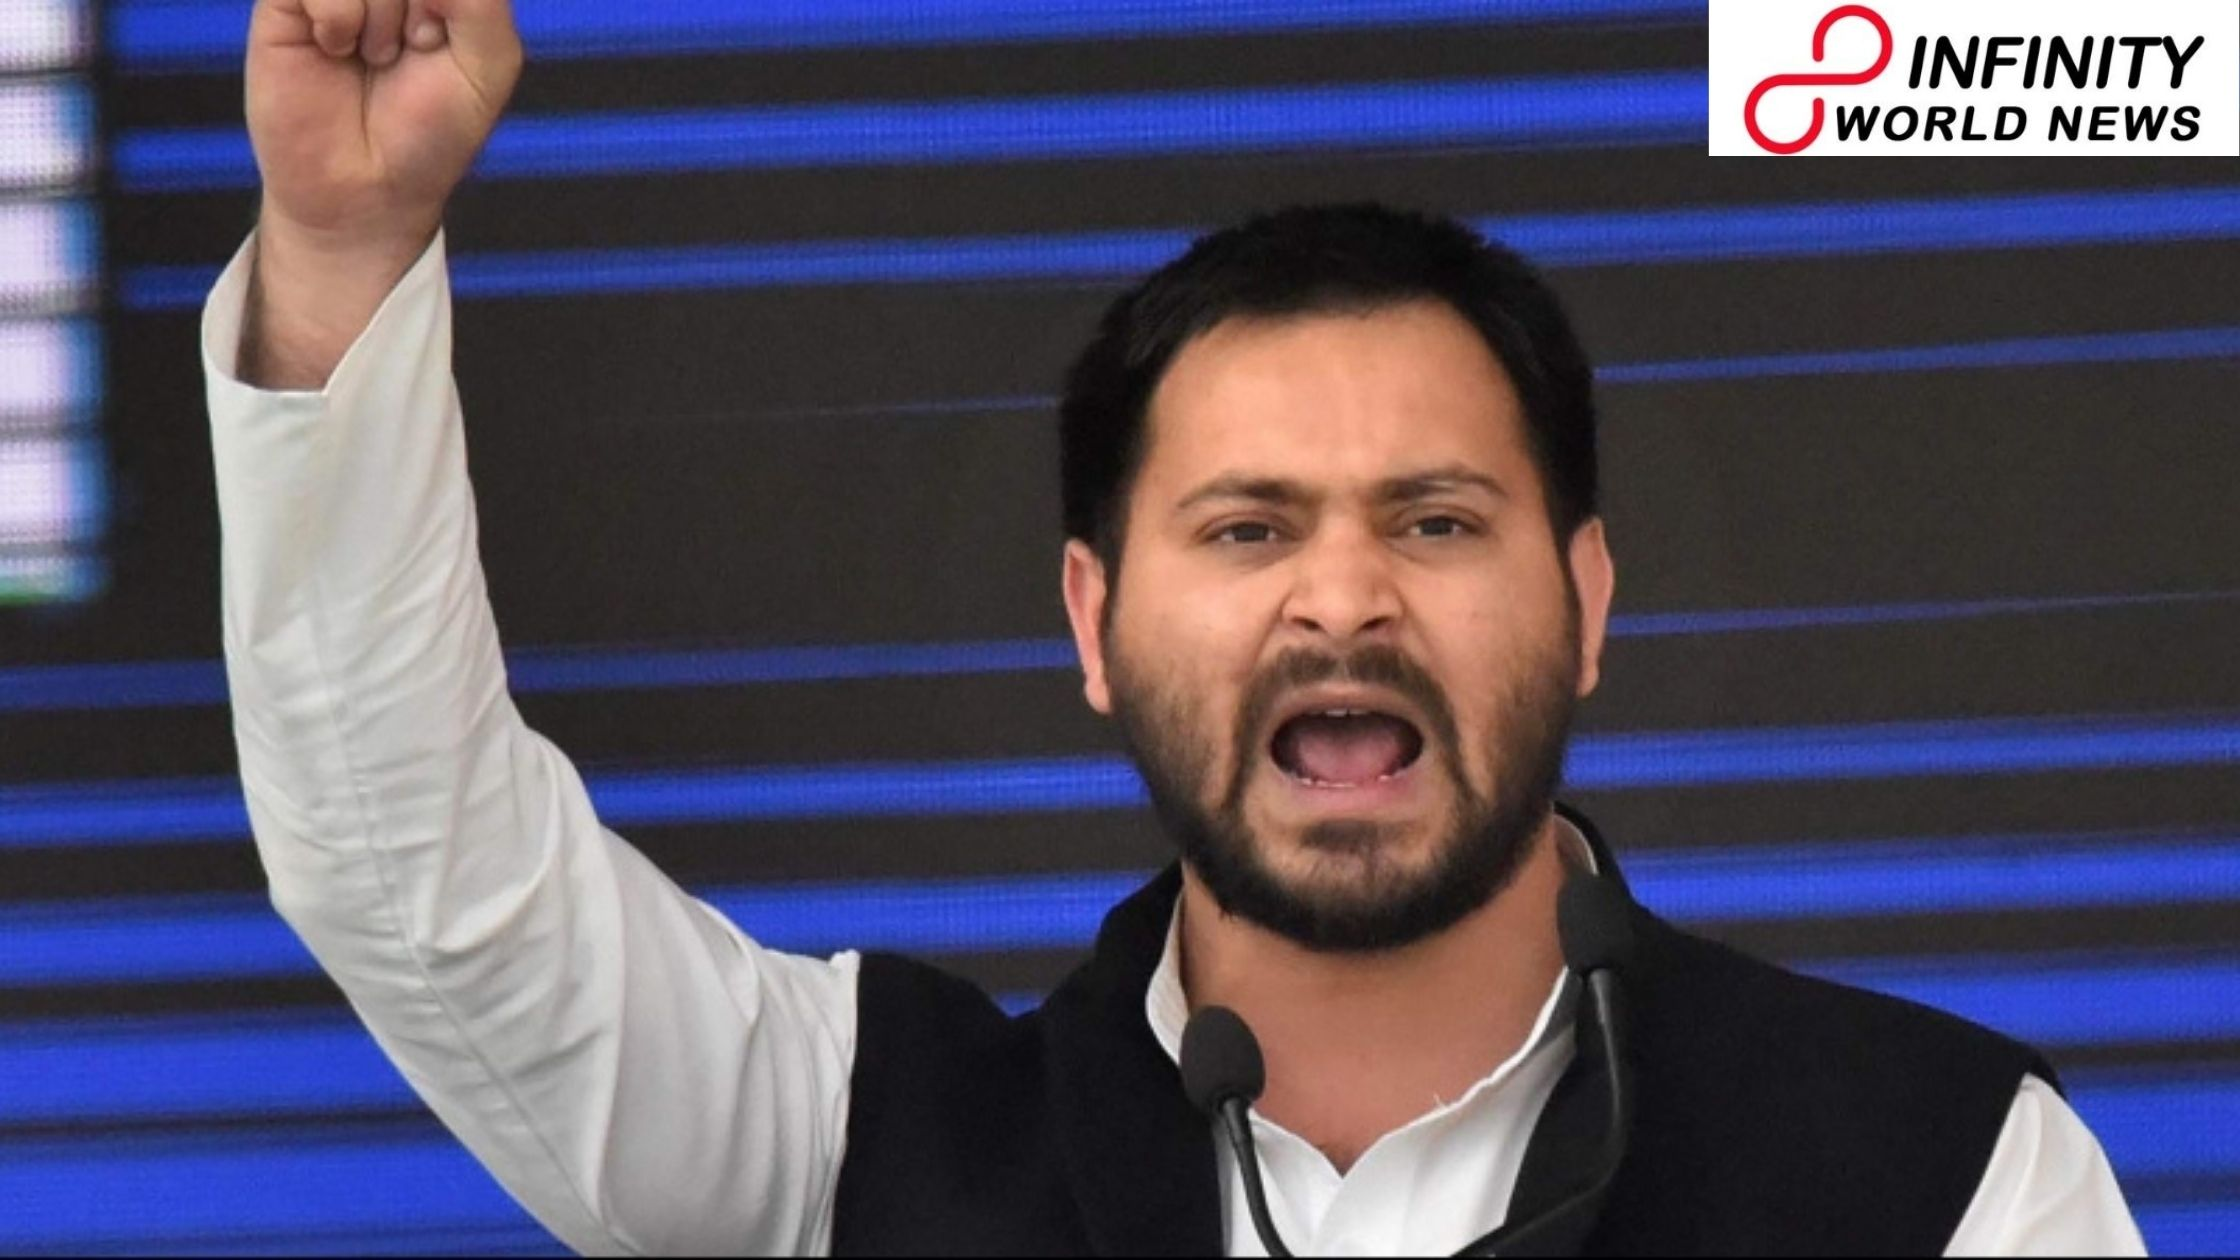 West Bengal assembly polls: RJD pioneer Tejashwi Yadav to meet TMC supremo Mamata Banerjee